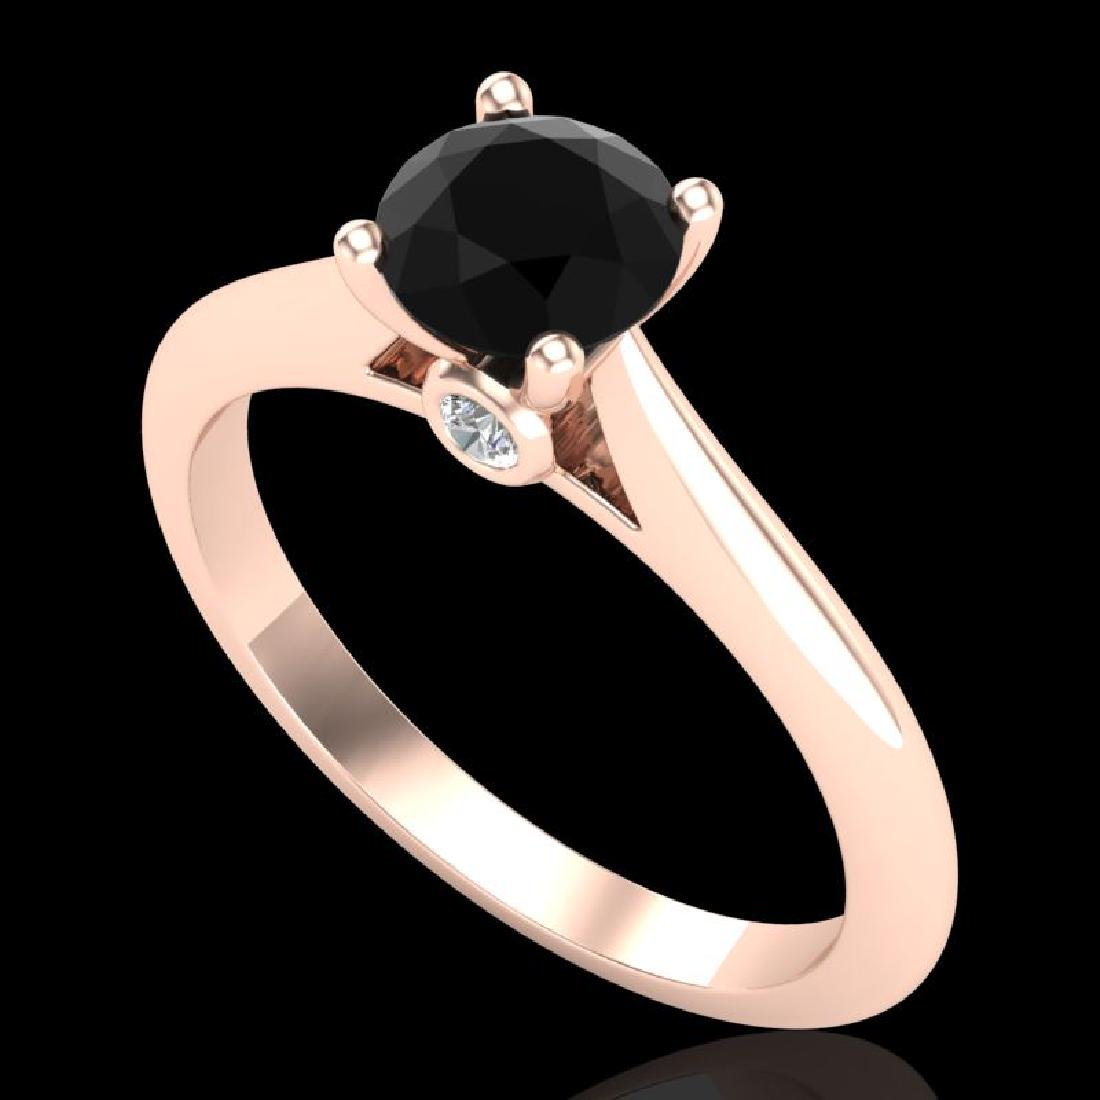 0.83 CTW Fancy Black Diamond Solitaire Engagement Art